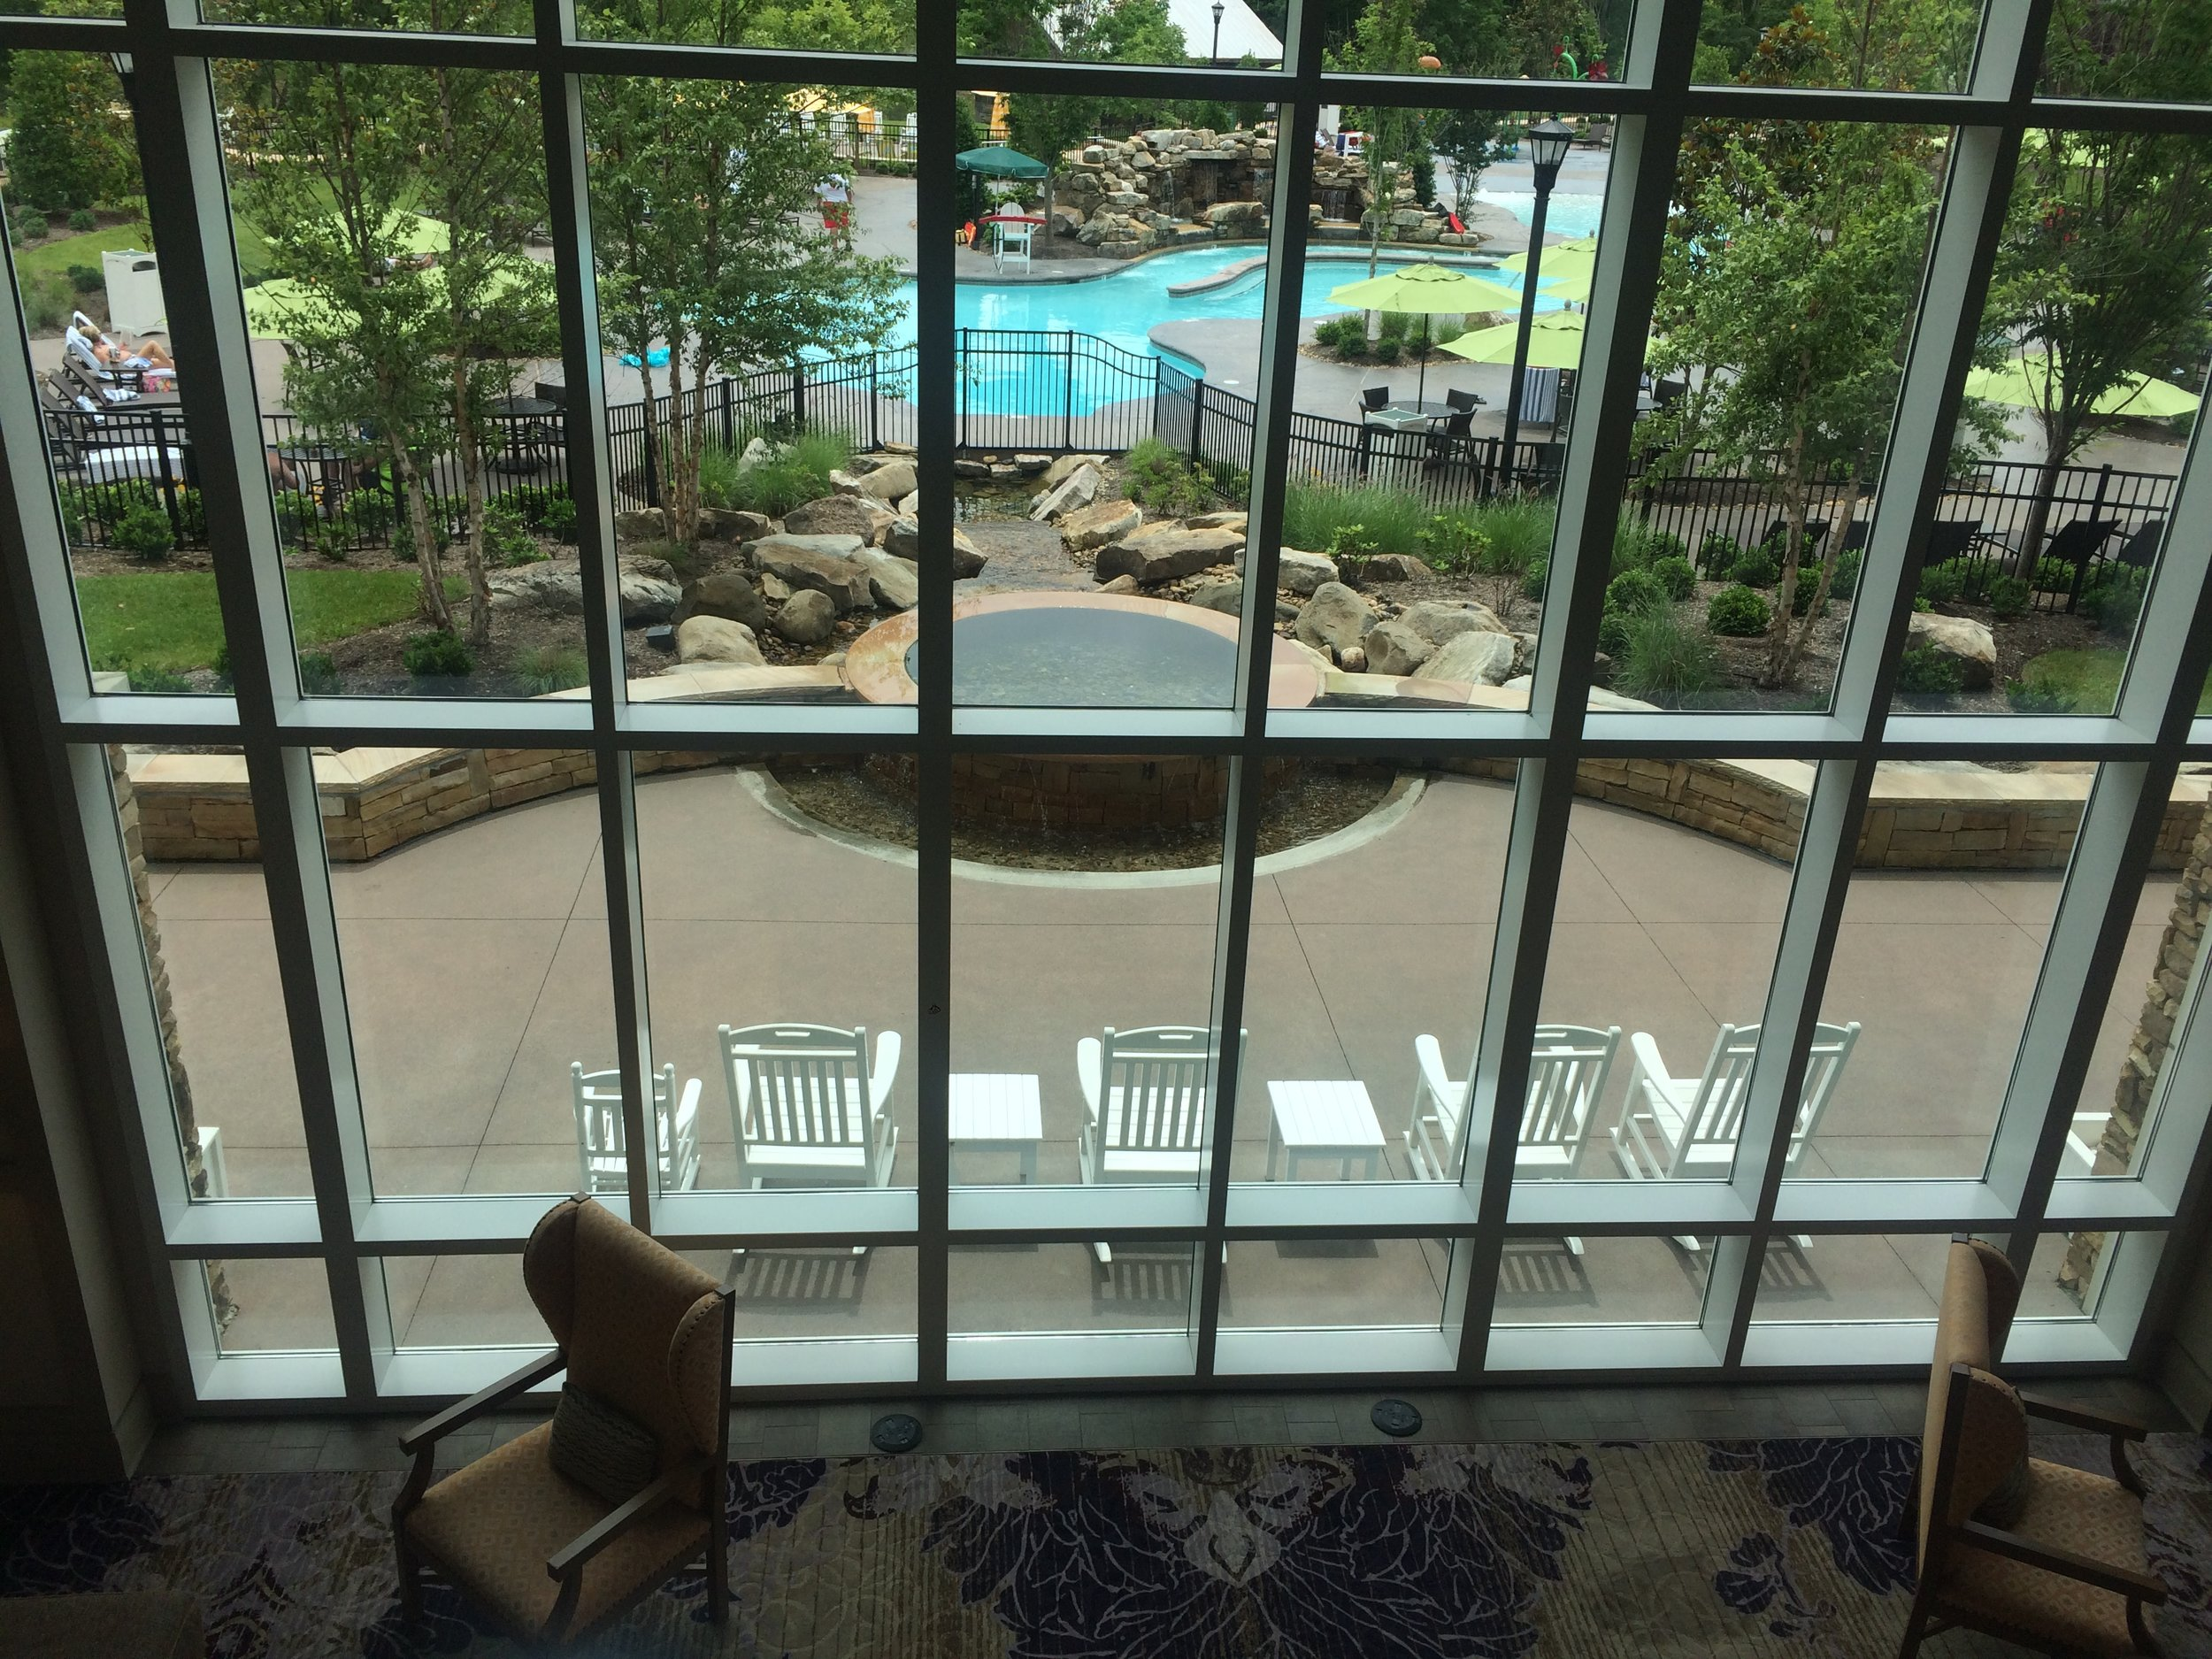 The view from the main lobby.